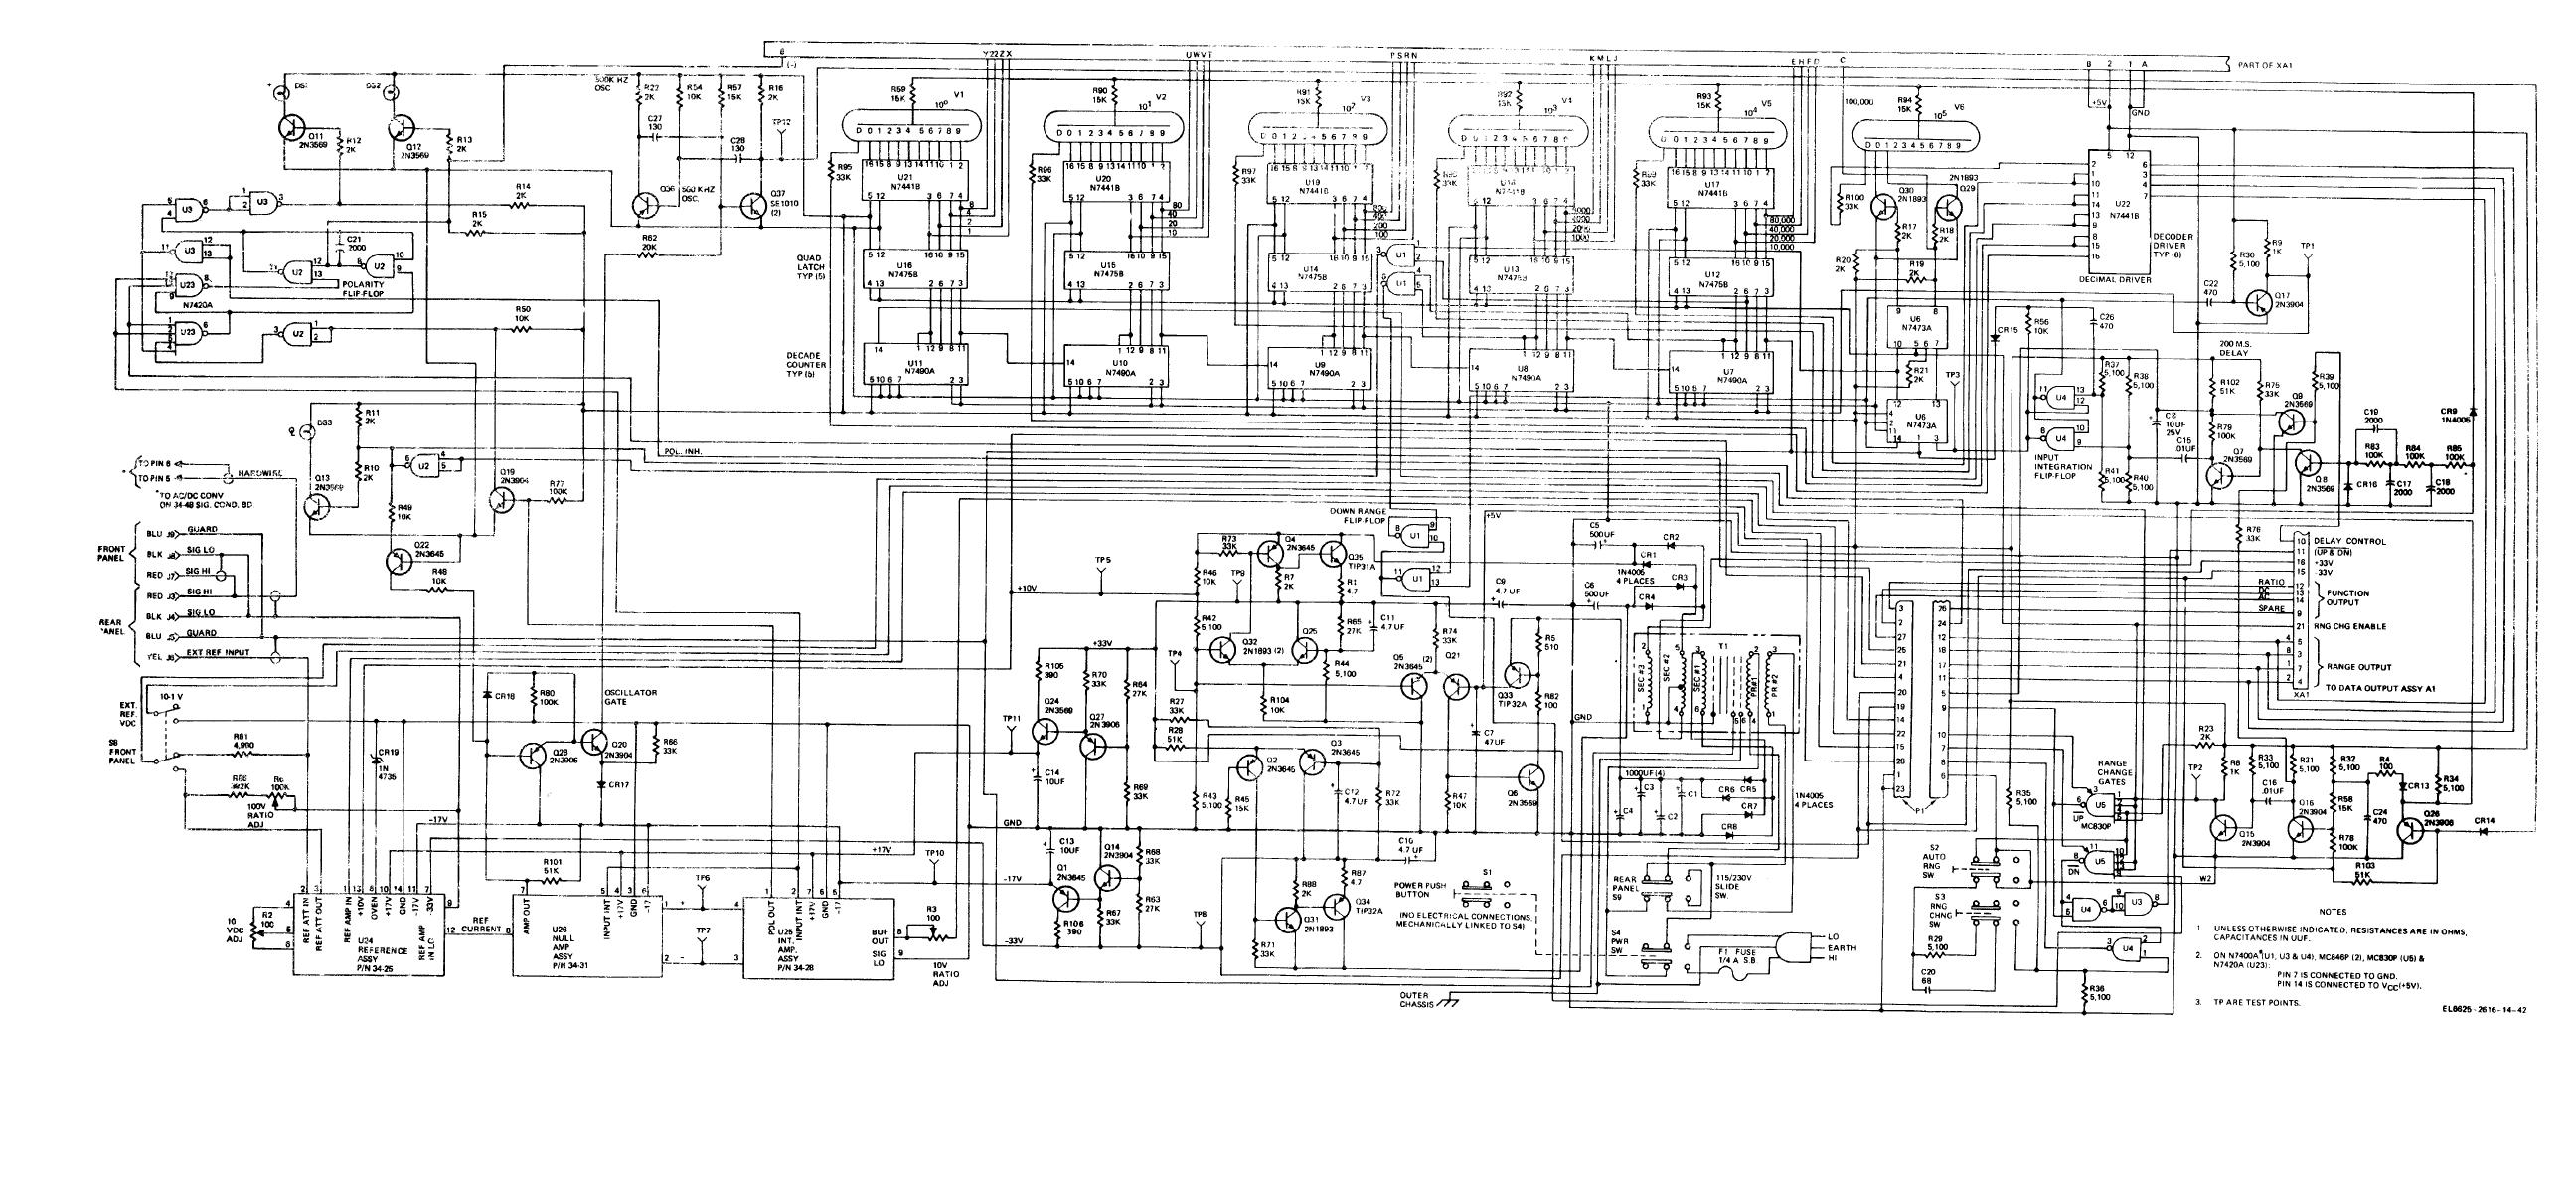 Figure 9-4. Main board assembly, schematic diagram.